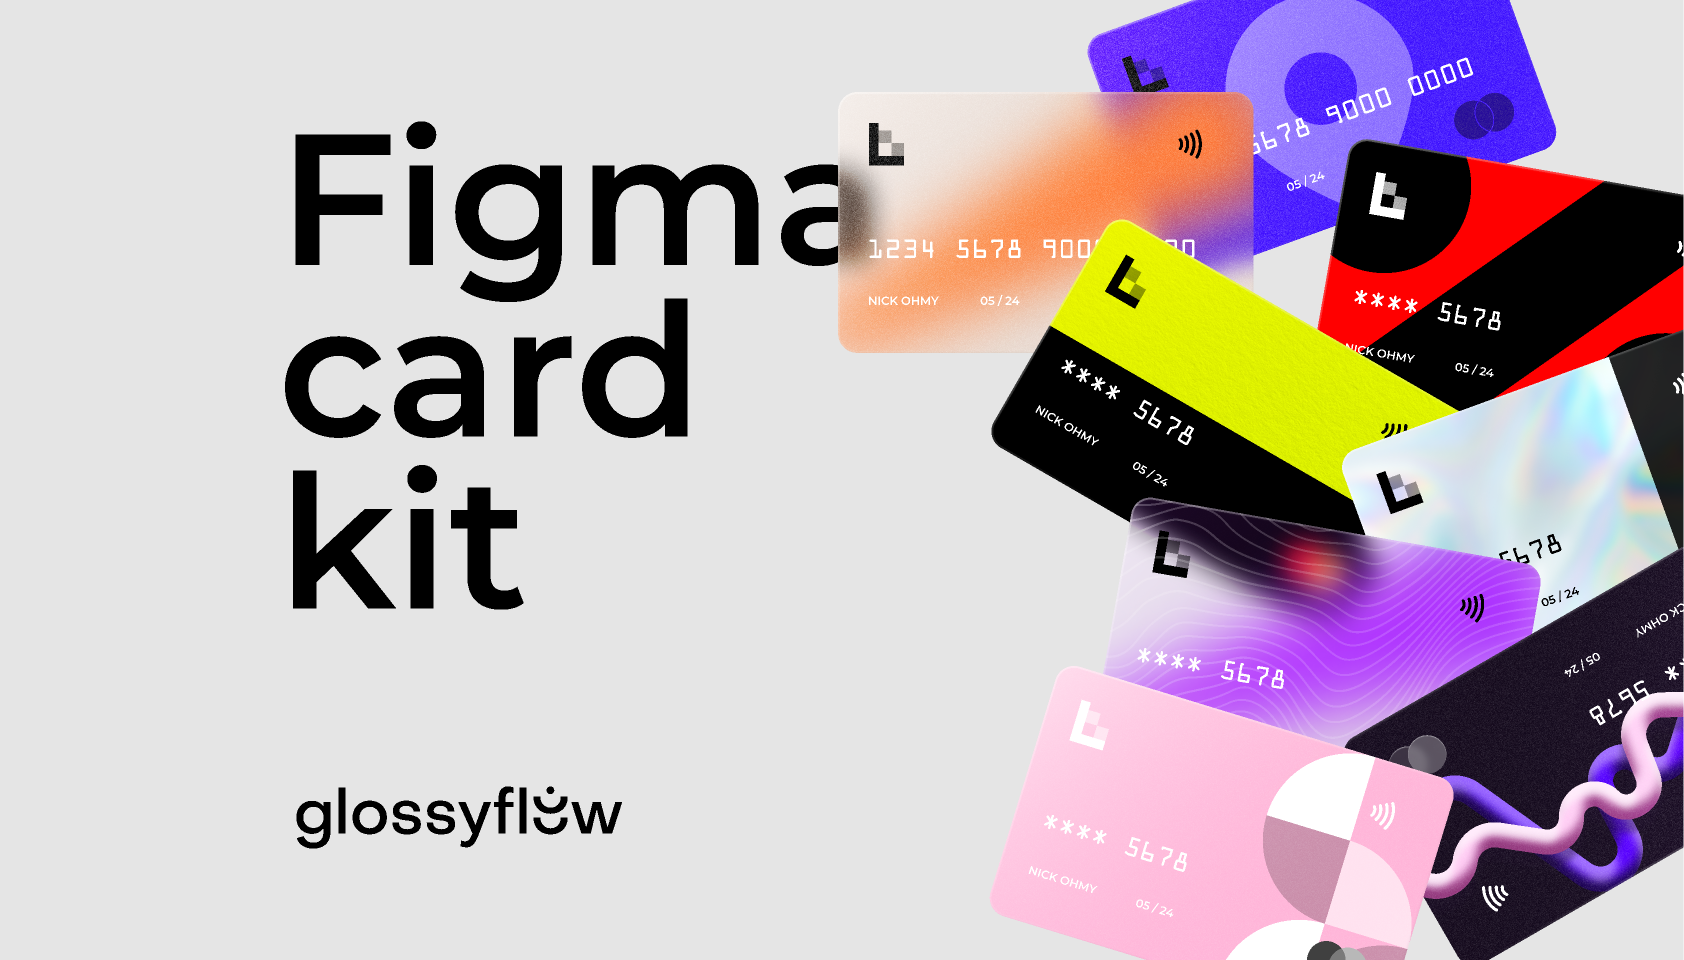 Glossy Bank Card Kit Figma Template